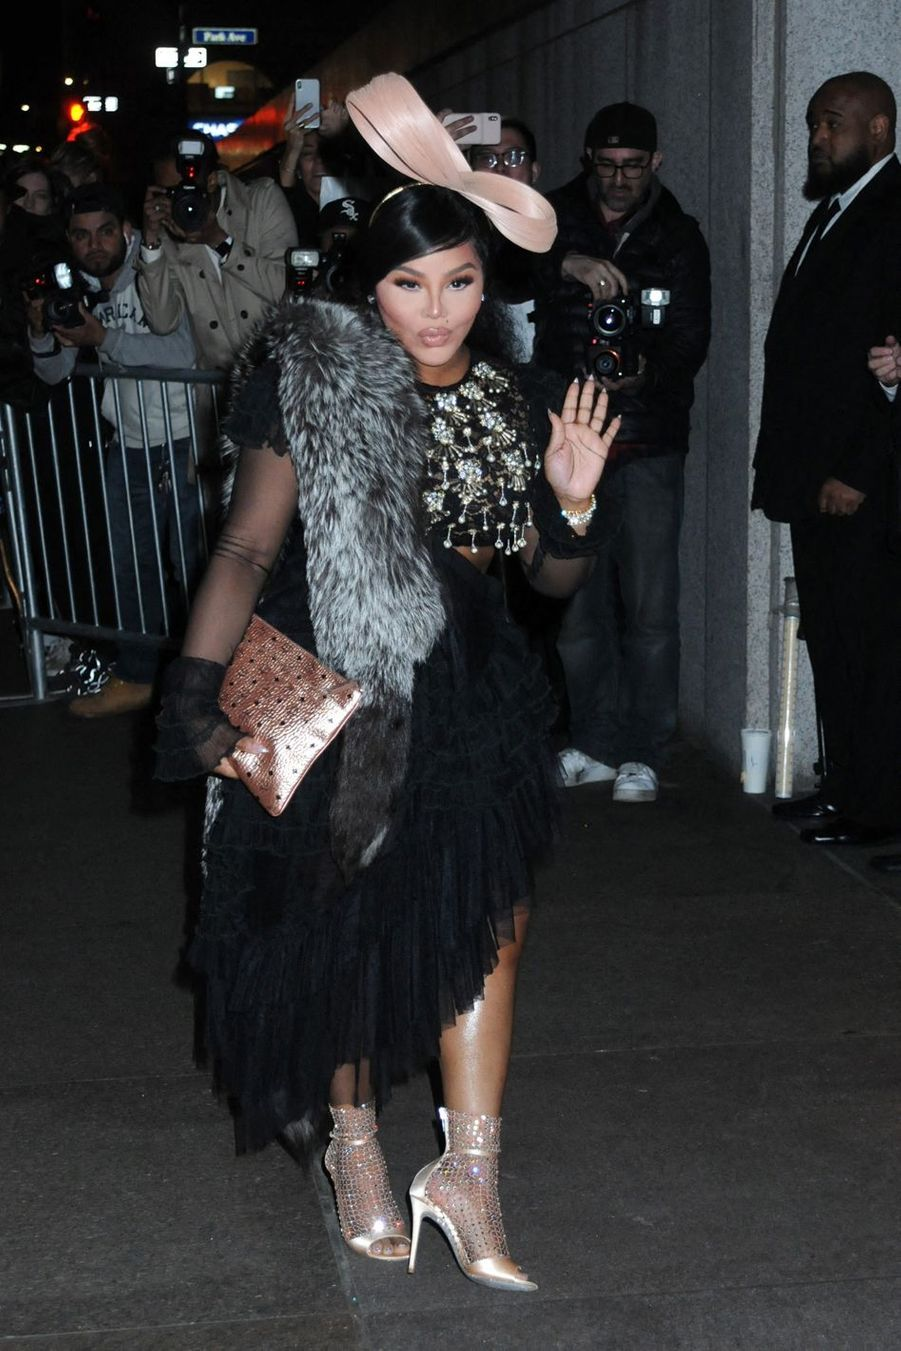 Lil Kim au mariage de Marc Jacobs et Char Defrancesco à New York le 6 avril 2019